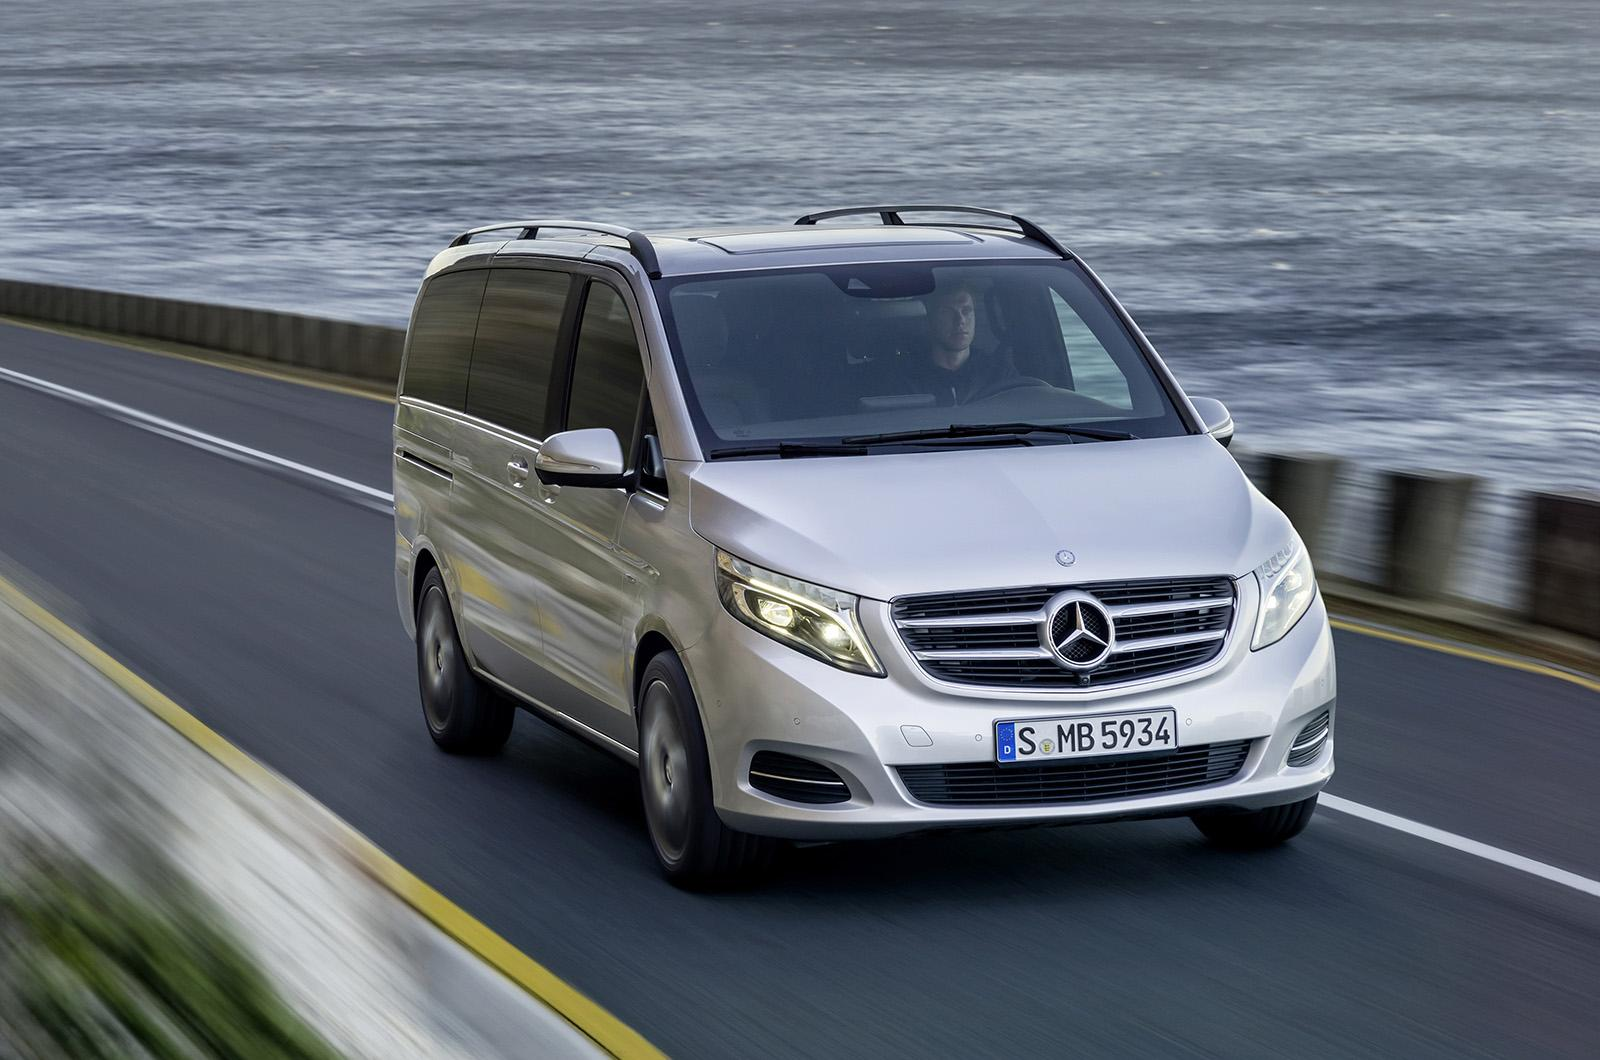 mercedes benz v class w447 officially unveiled image 225684. Cars Review. Best American Auto & Cars Review